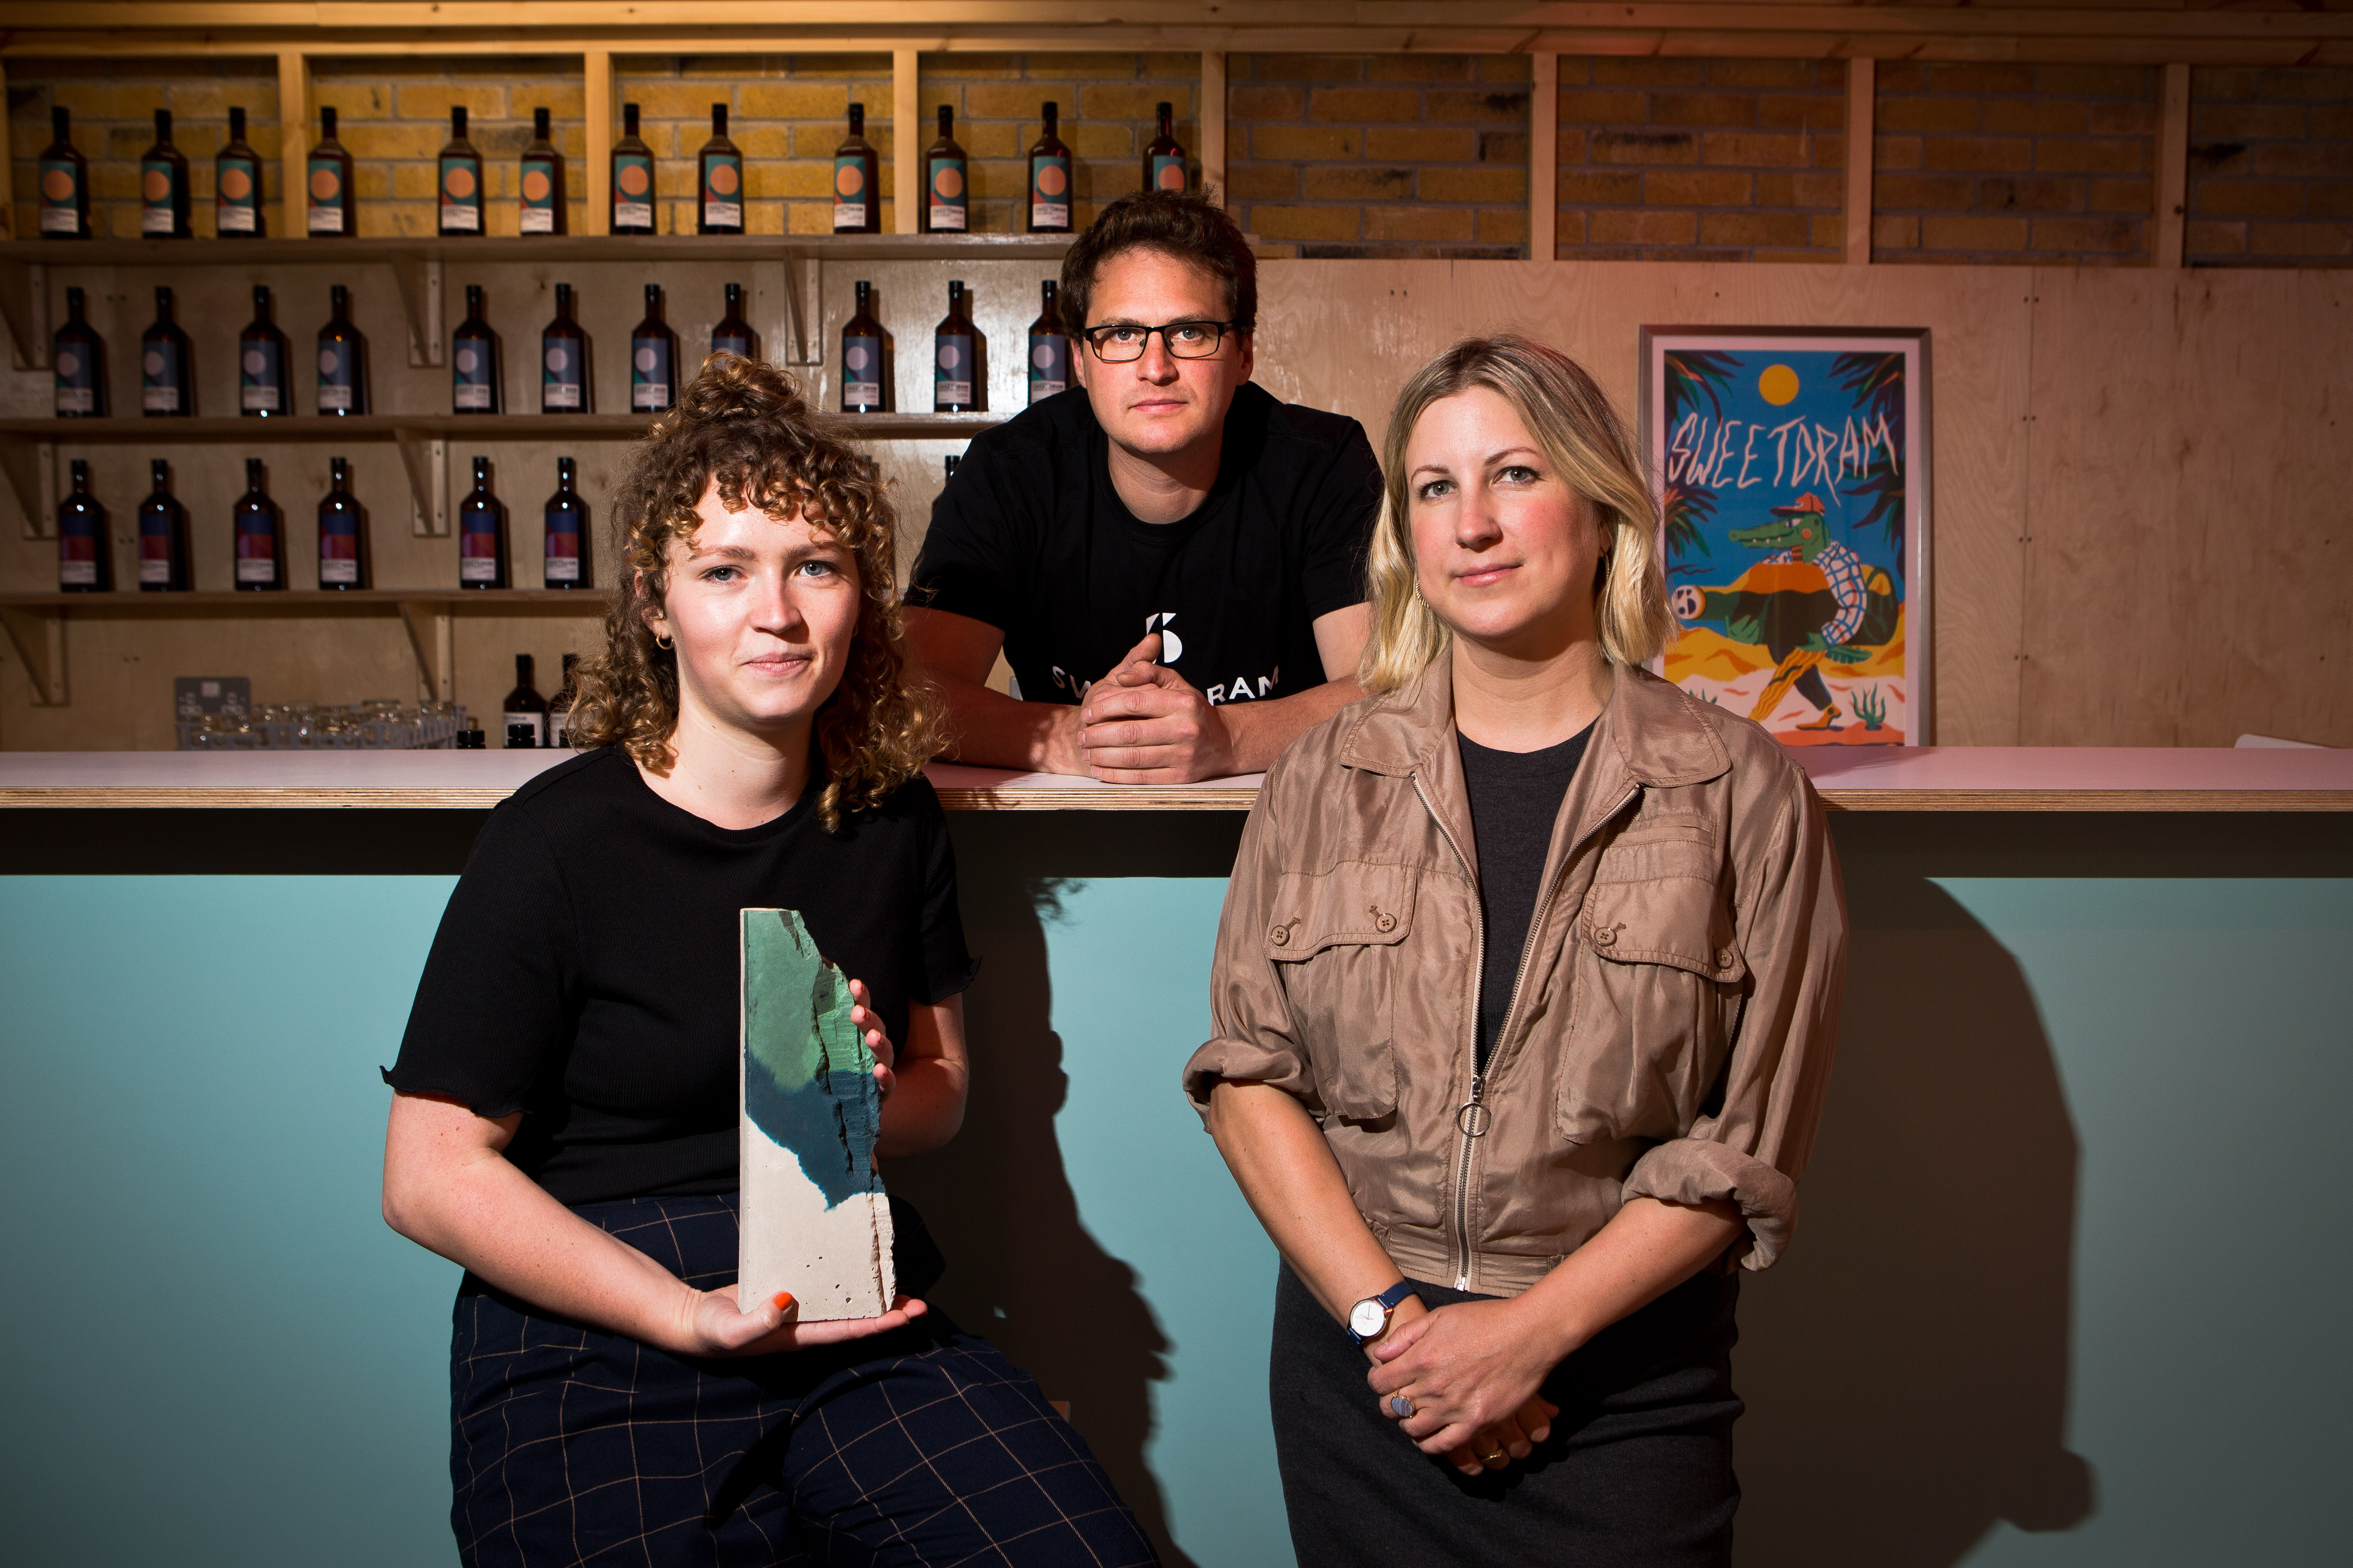 (left to right) Edinburgh designer Emma McDowall, Sweetdram director Daniel Fisher and Local Heroes founder Stacey Hunter